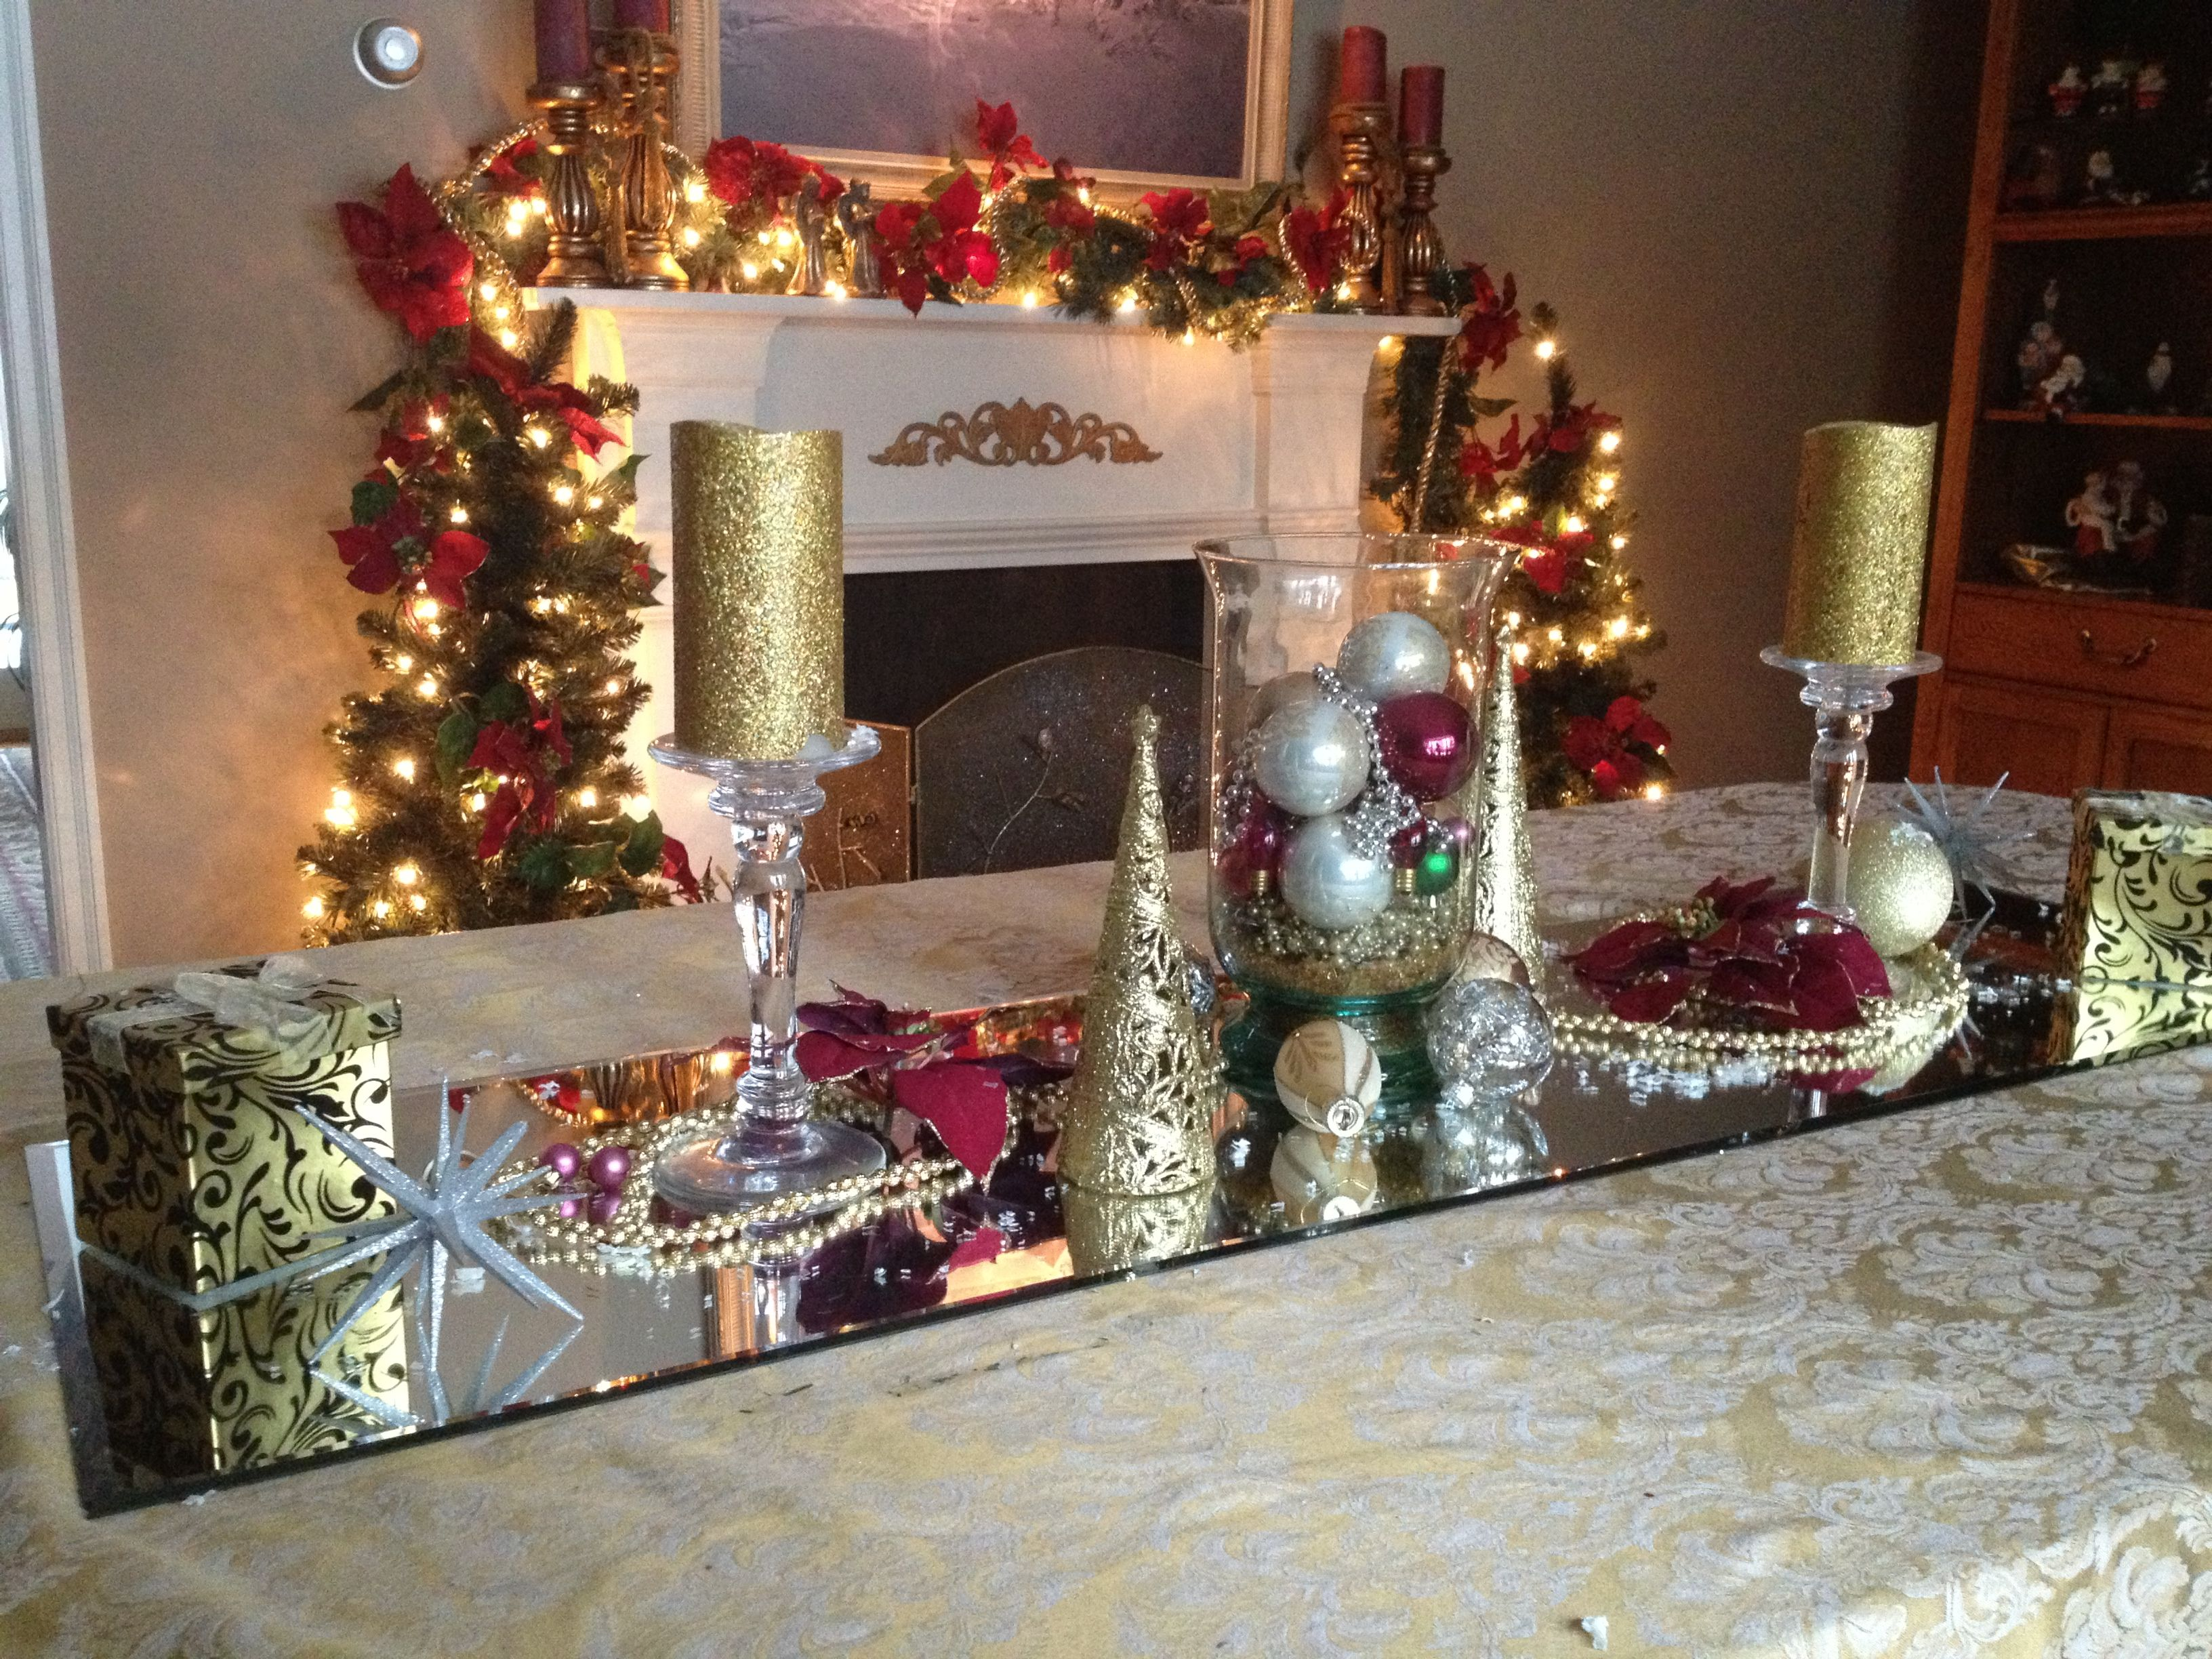 Christmas Table Using A Door Mirror And Decorations You Already Have Christmas Table Christmas Decorations Decor